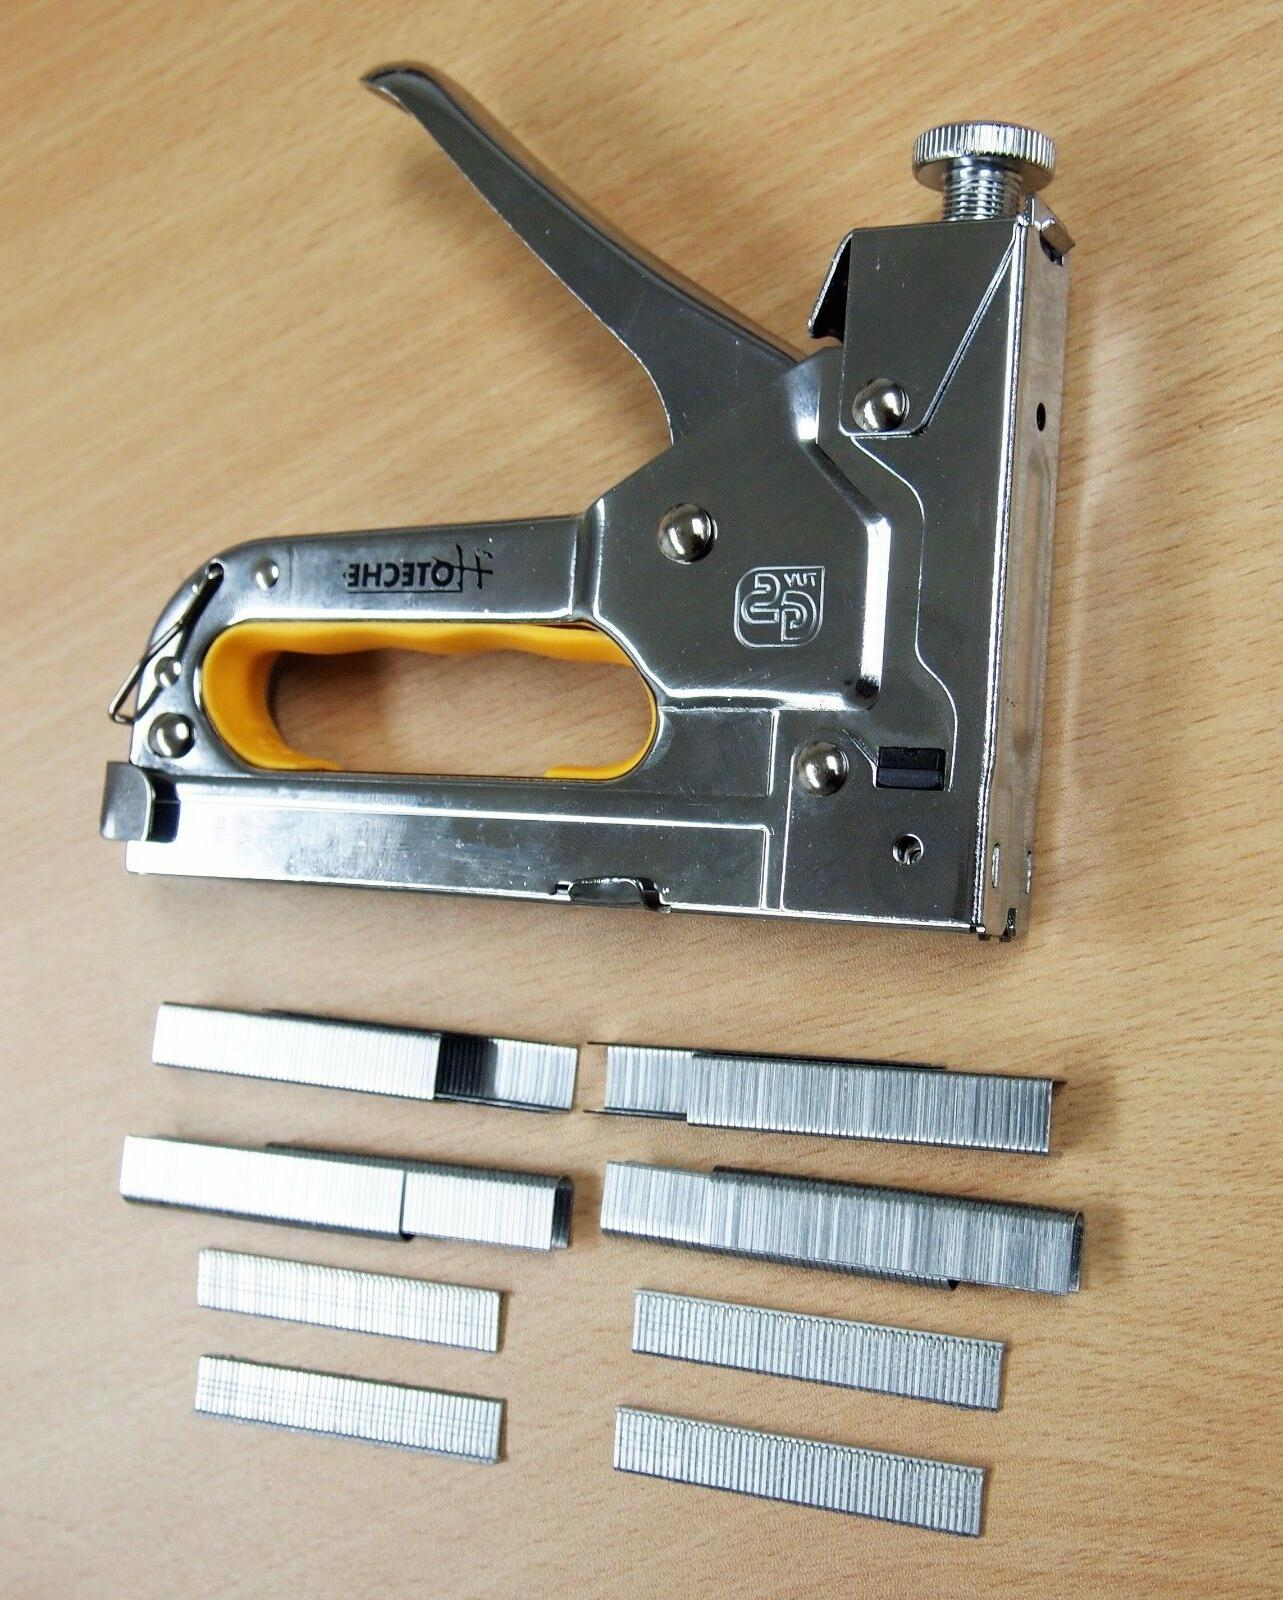 1 Staple Tacker with 600 Staples